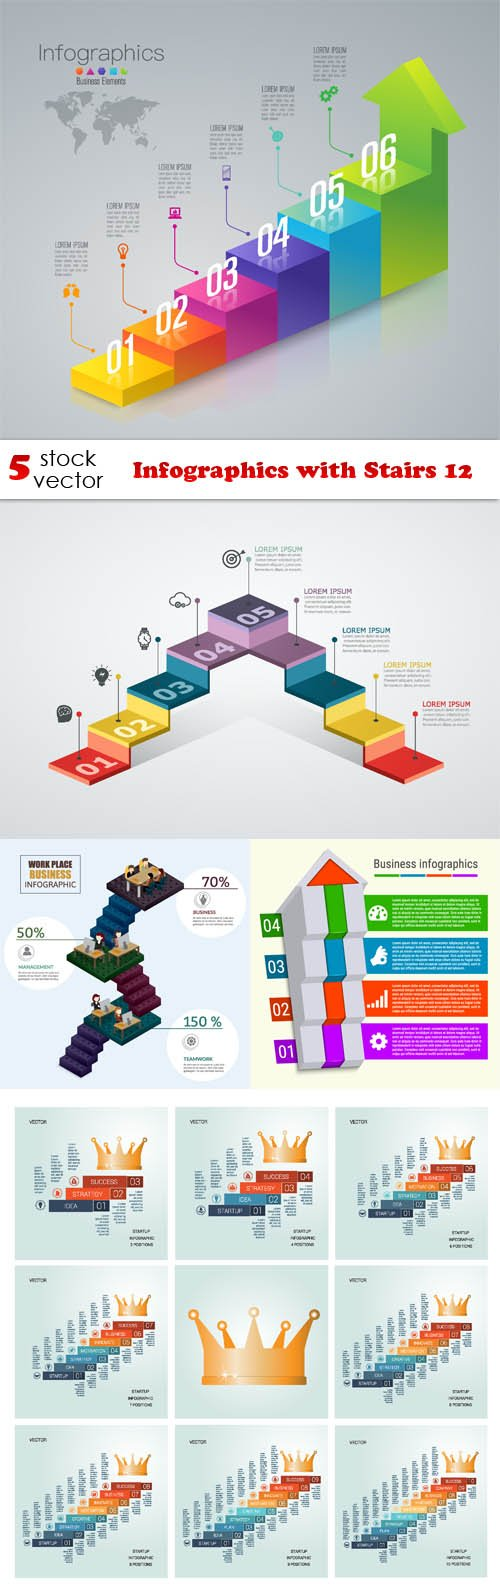 Vectors - Infographics with Stairs 12